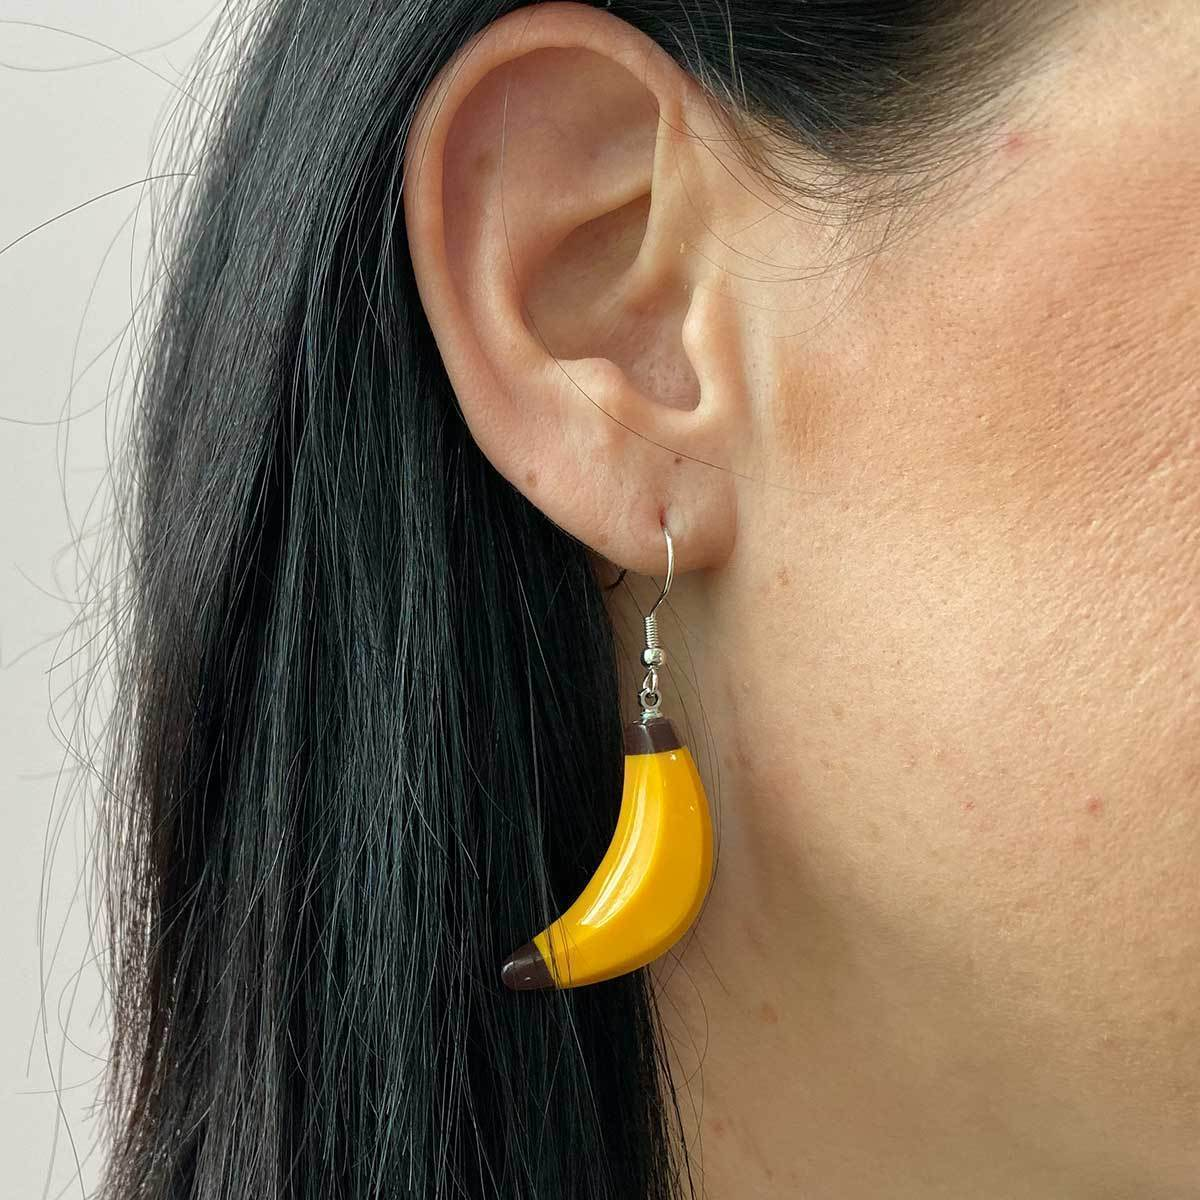 RO1960ER-G-BANANA-Tutti-Frutti-Banana-Earrings-on-model-1200x1200.jpg